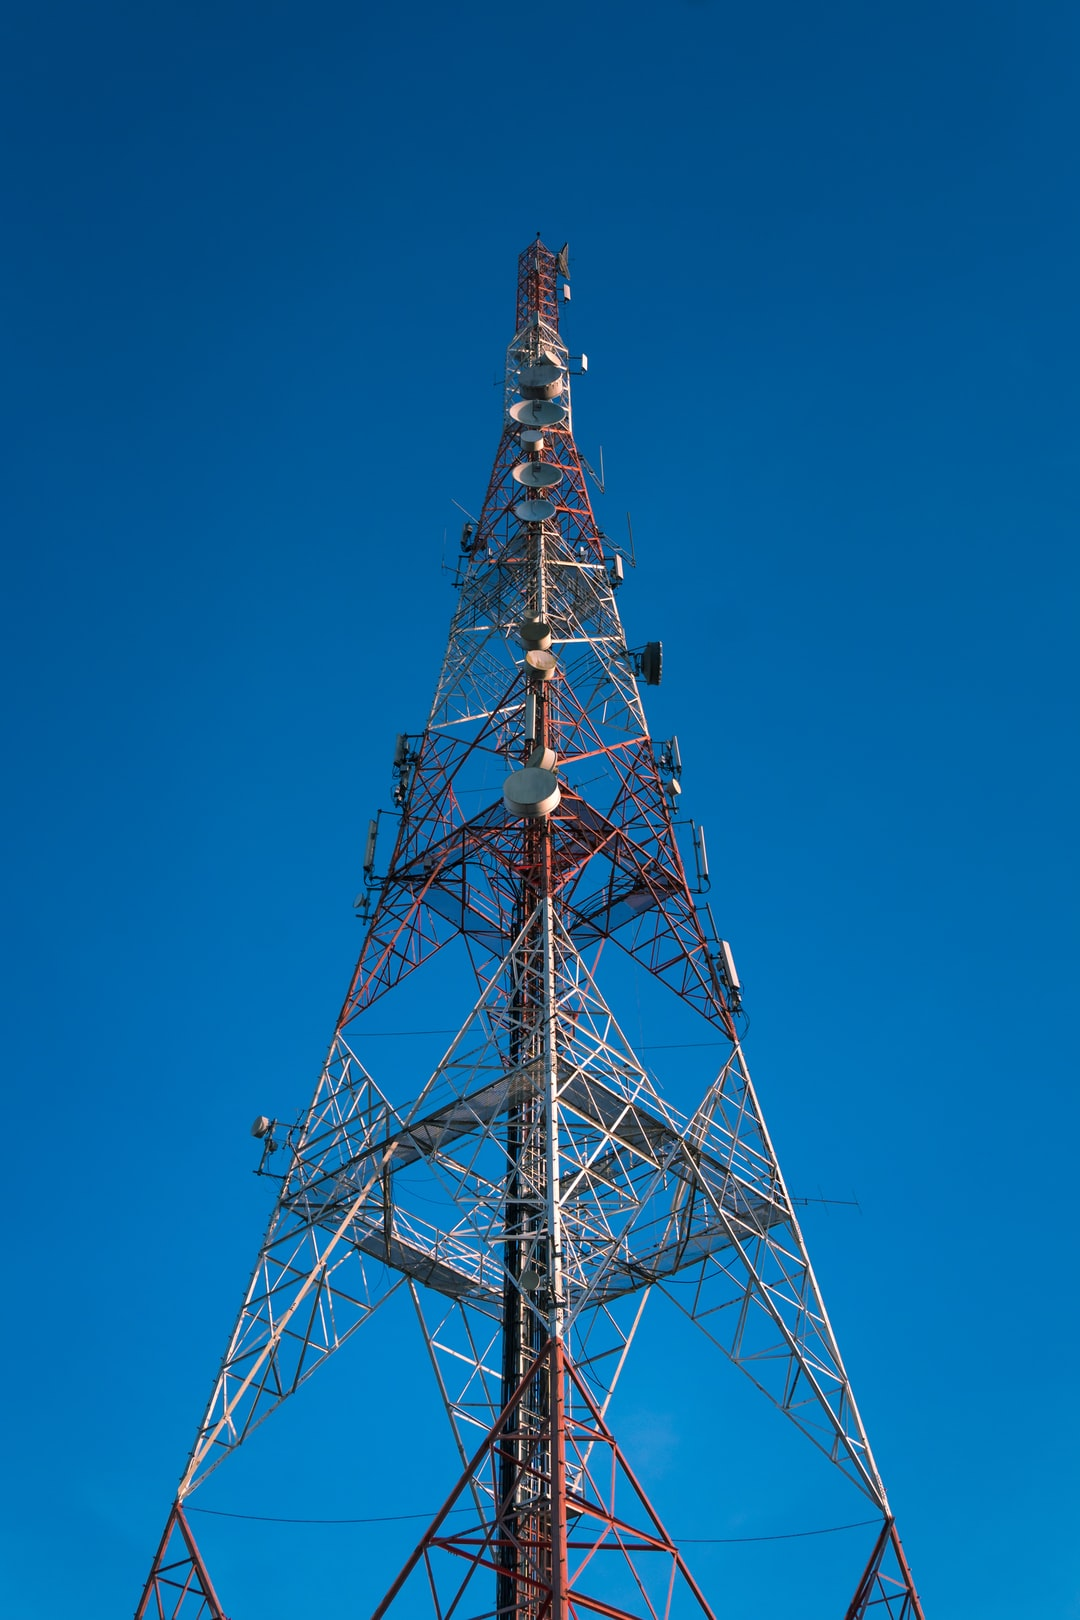 Low angle view of communication tower.